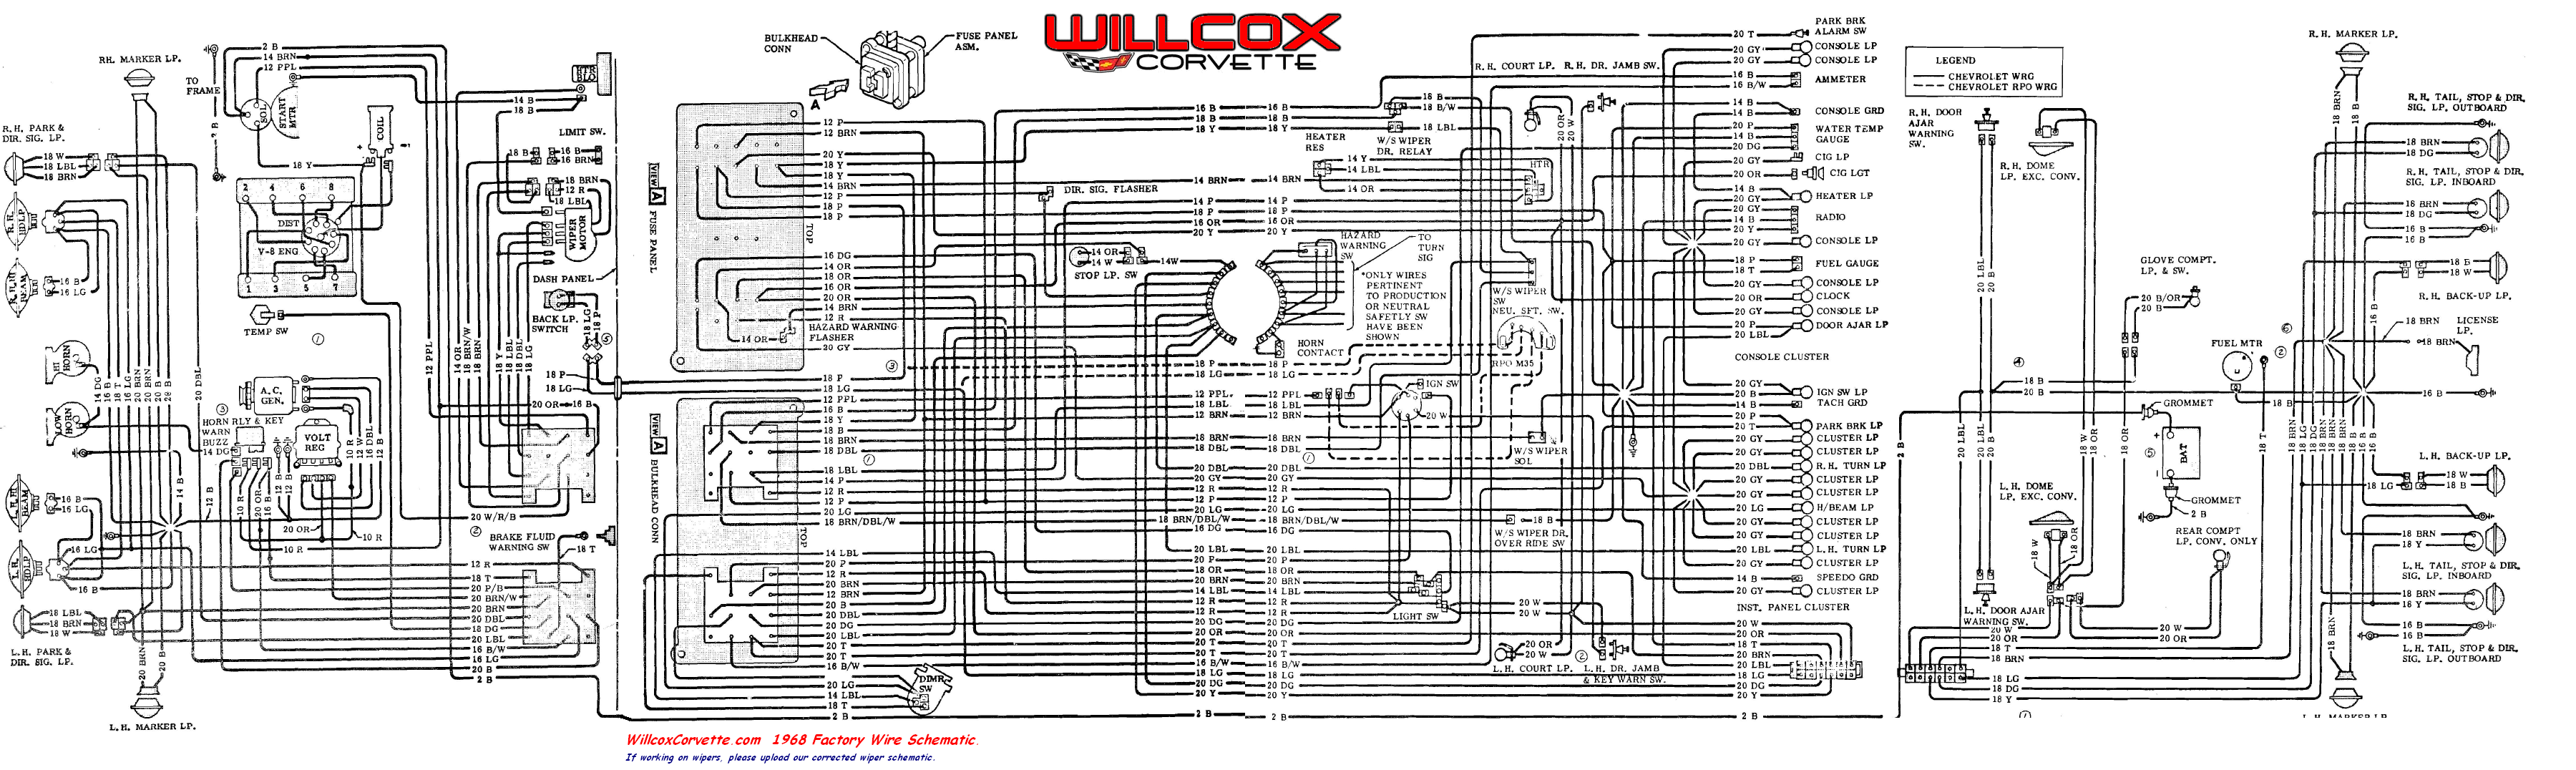 1968 Corvette Ac Wiring Diagram Modern Design Of Radio Third Level Rh 20 4 16 Jacobwinterstein Com